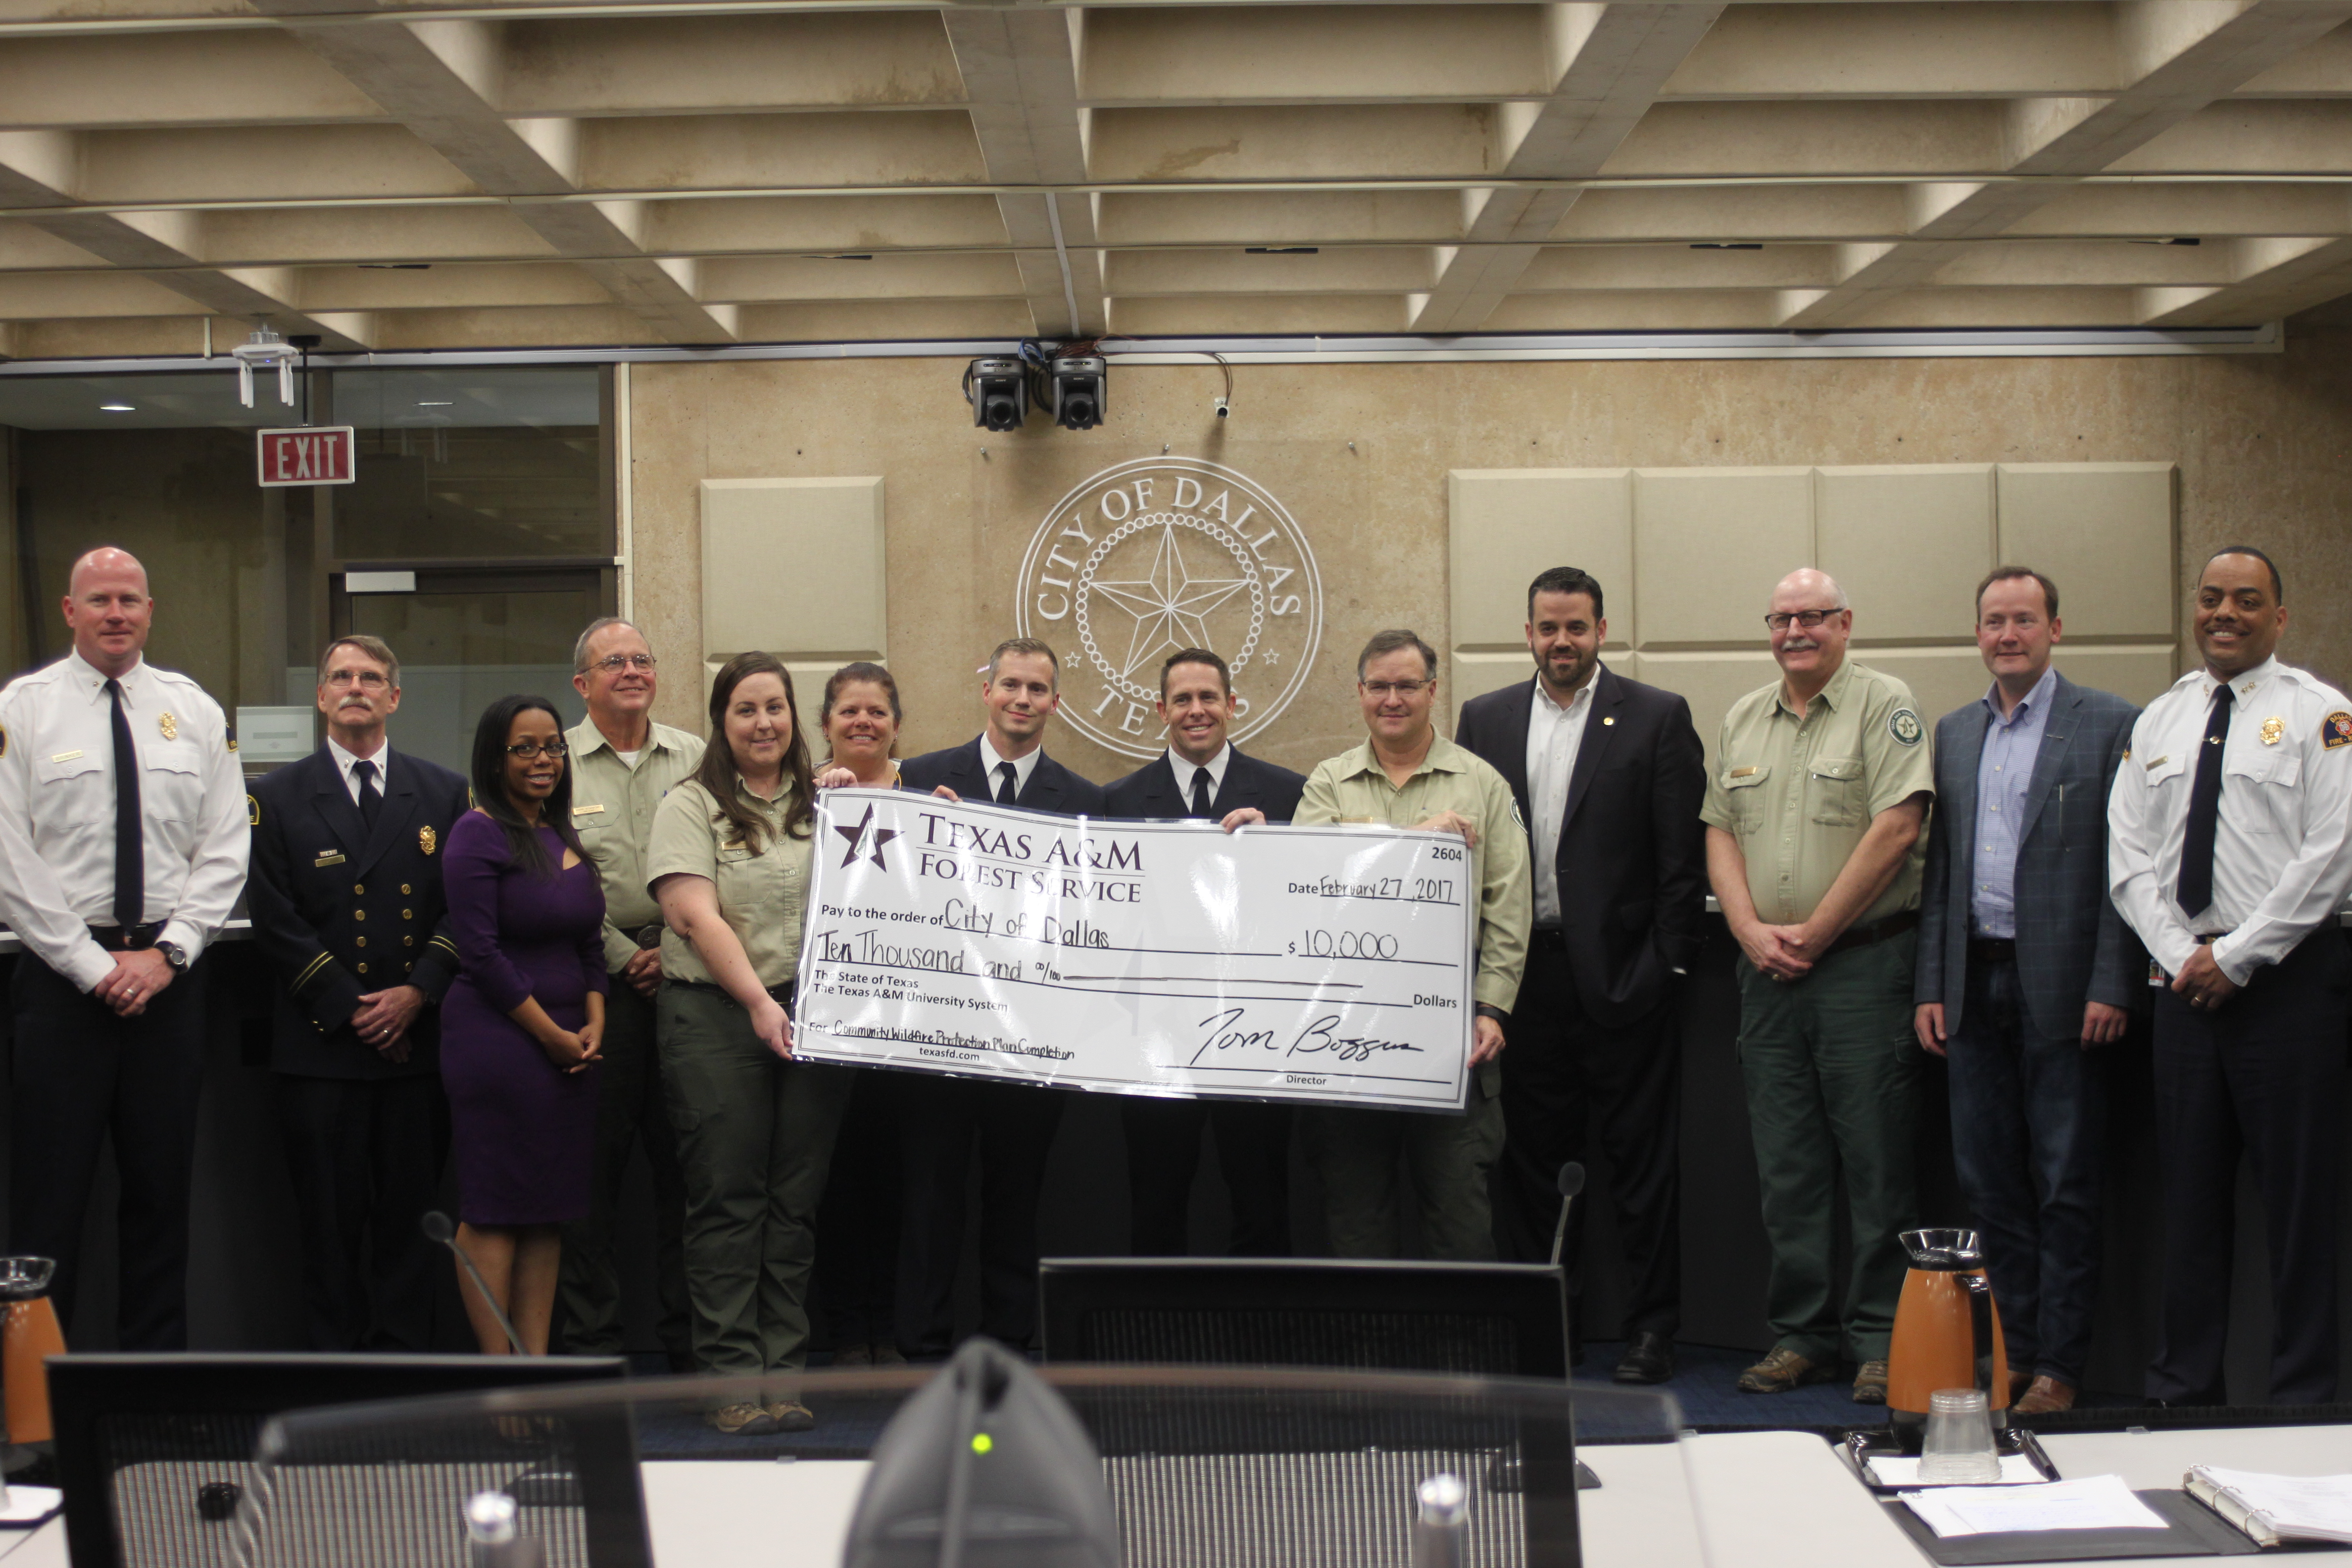 <p>The city of Dallas has developed a plan to reduce risks and better prepare for wildfires. 